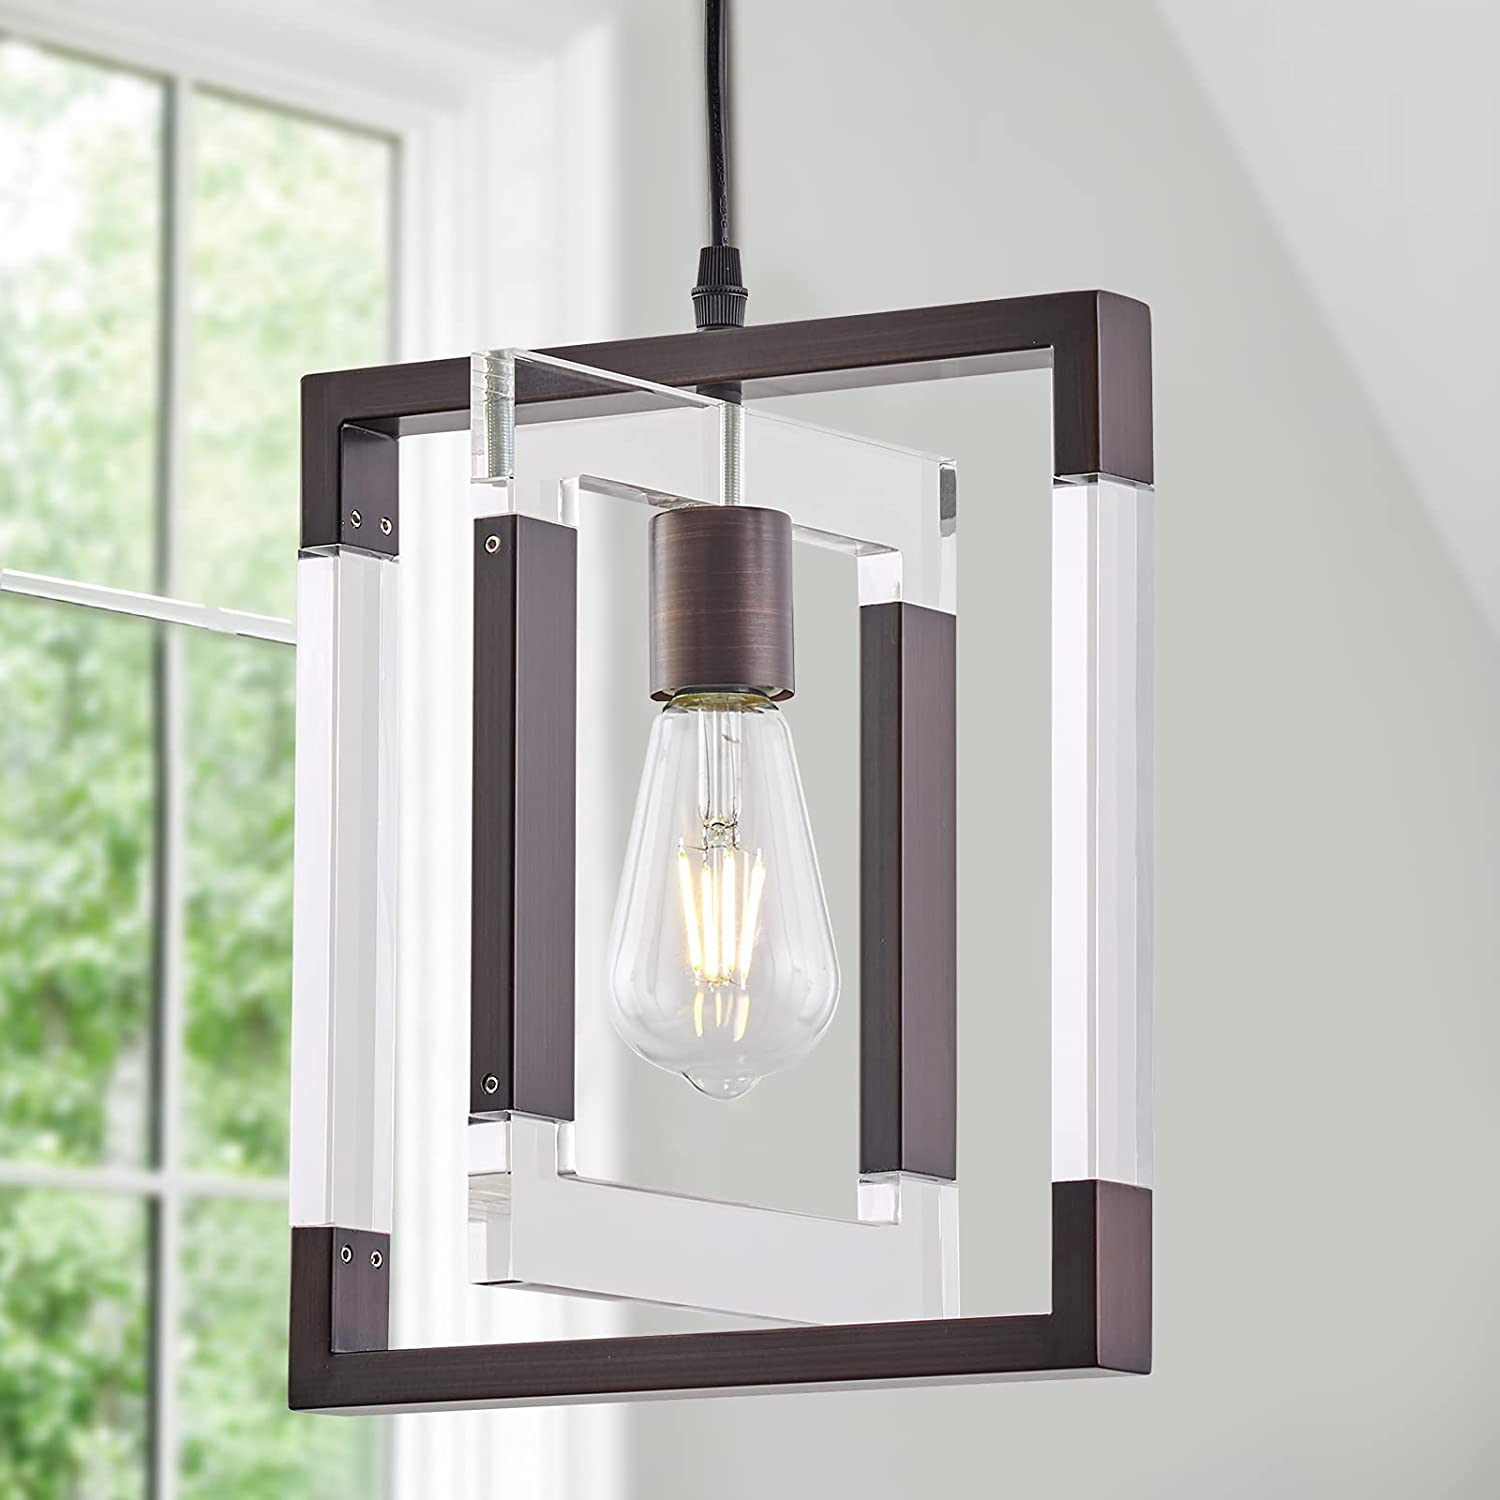 1-Light Mini Pendant Outlet SALE Light Modern with Br Oil Chandelier Minneapolis Mall Rubbed